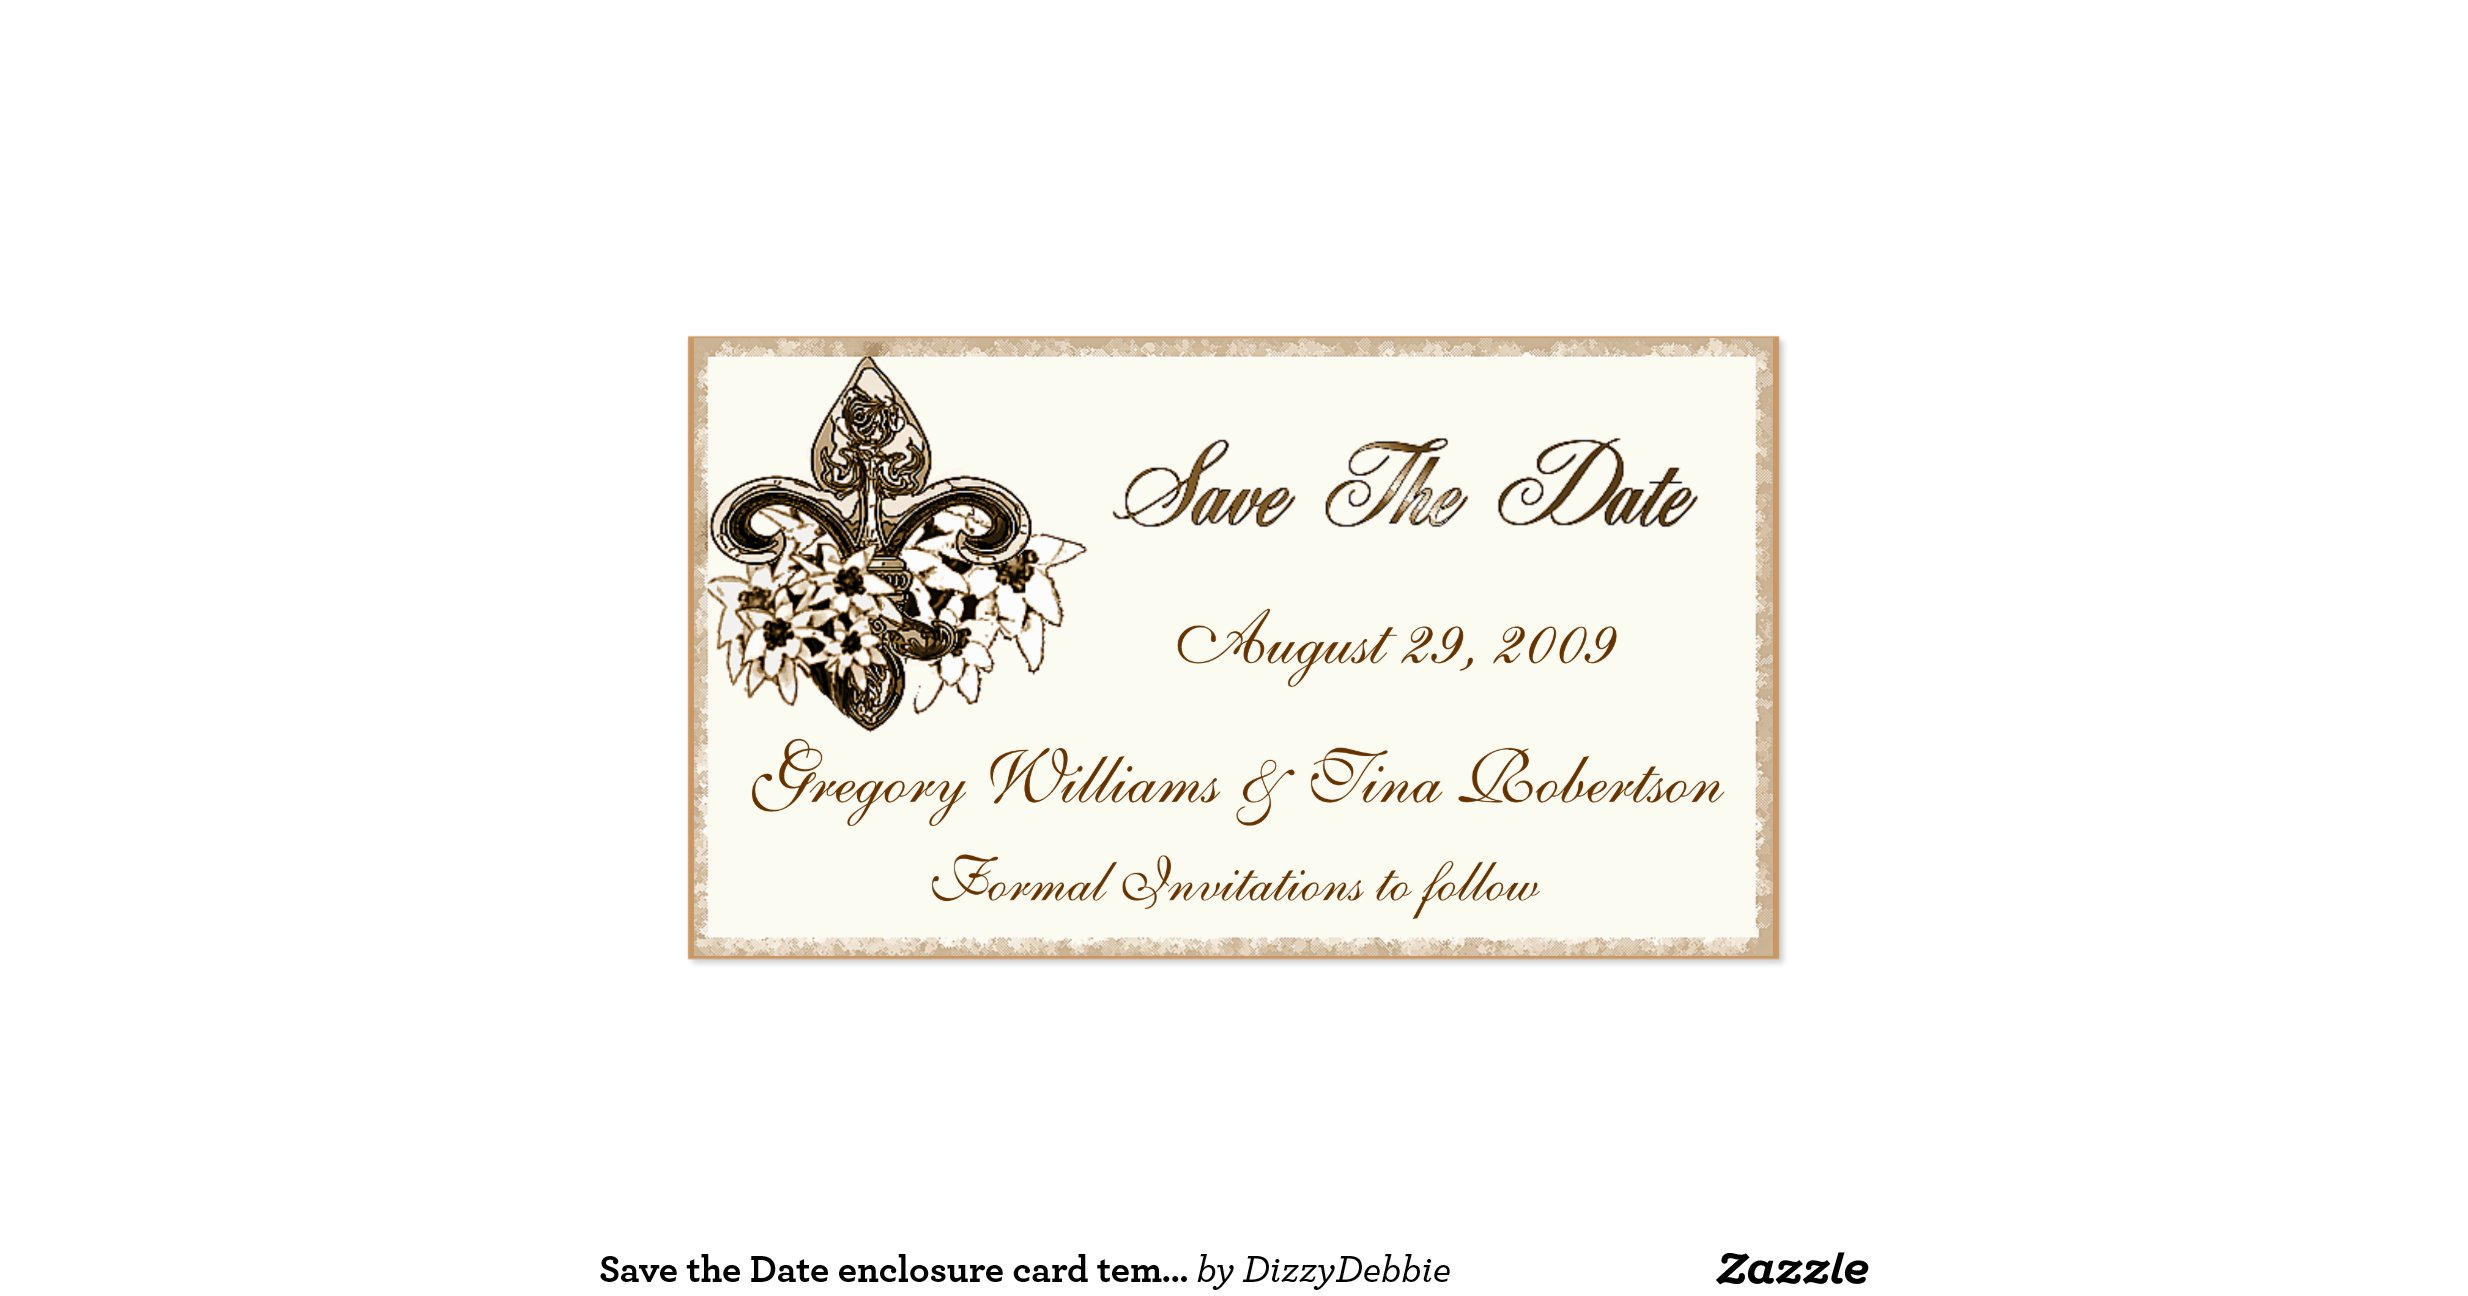 2 sided business cards templates free - save the date enclosure card template double sided